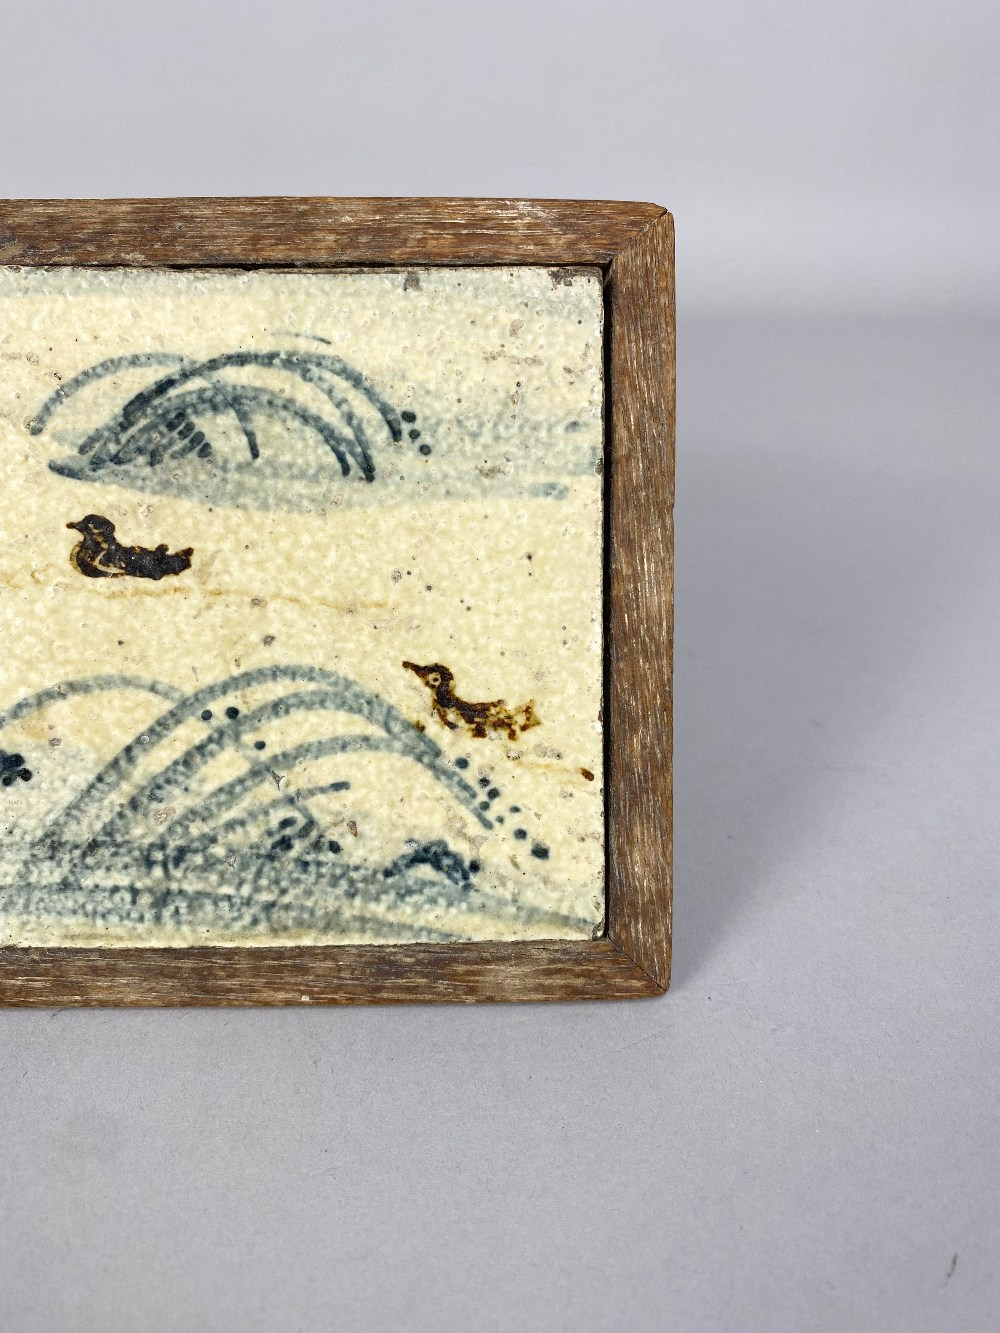 BERNARD LEACH (1887-1979) for Leach Pottery; a stoneware tile depicting ducks and reeds in - Image 3 of 4